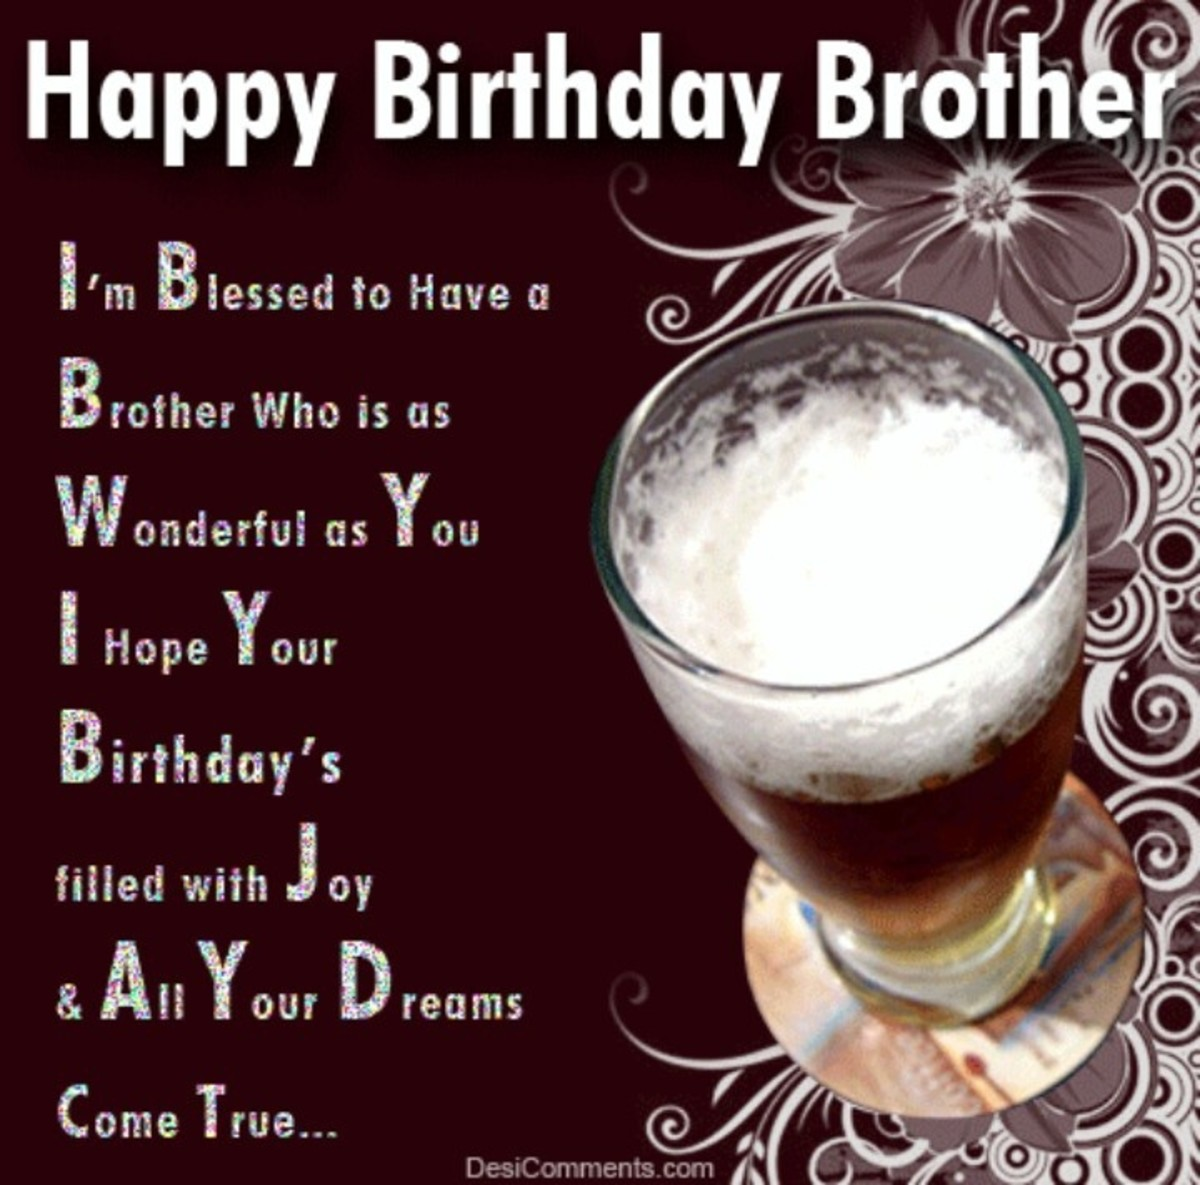 HAPPY BIRTHDAY BROTHER | Birthday Wishes for Brother | Funny Pictures ...